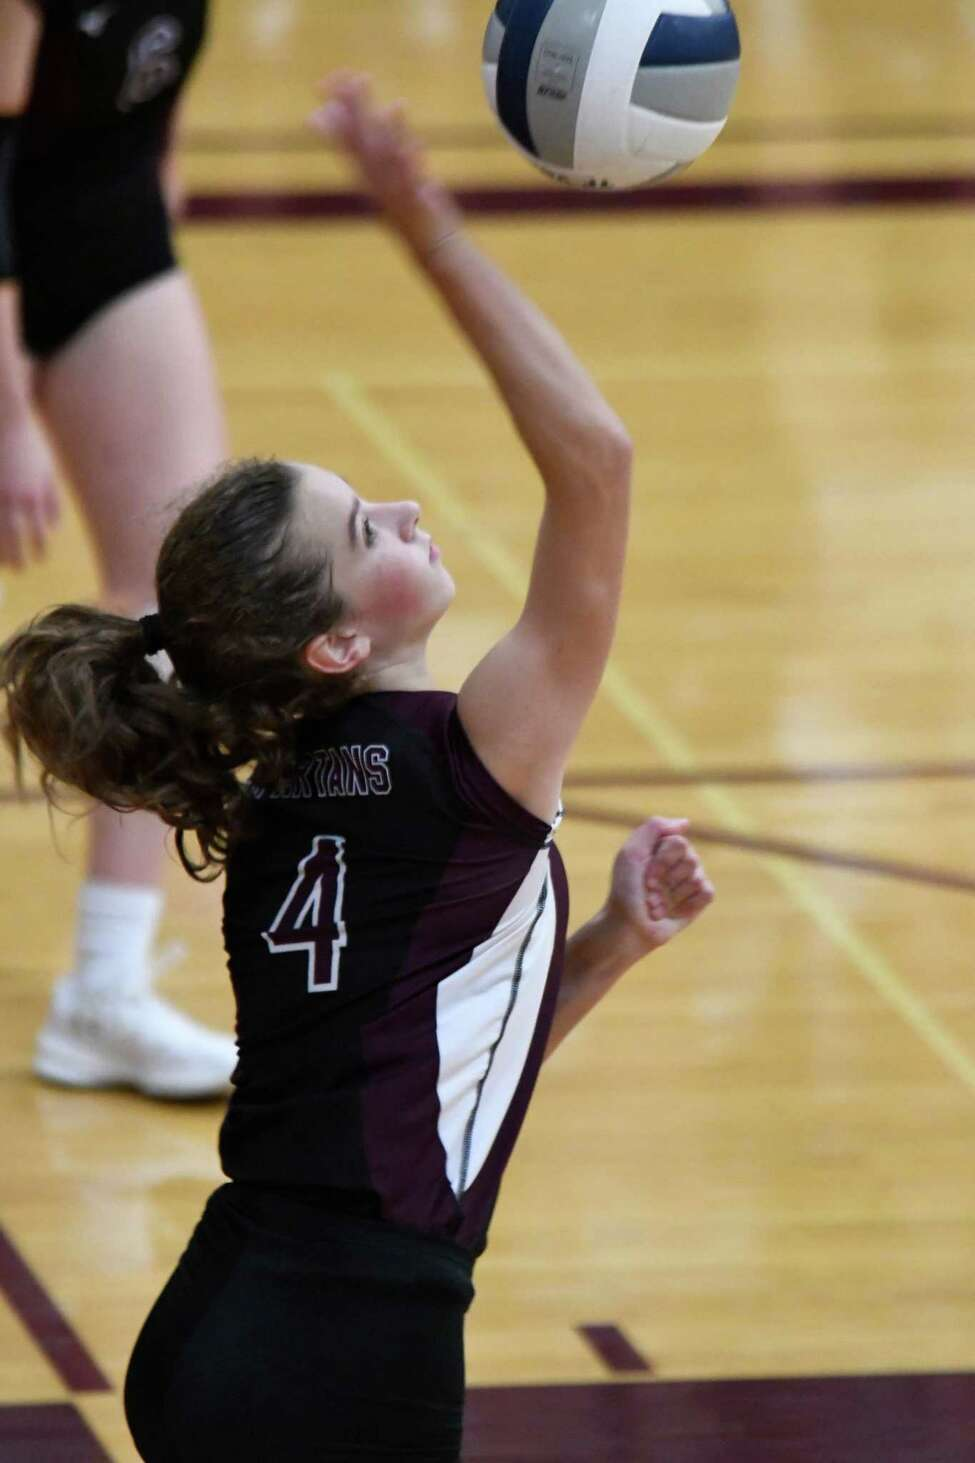 Burnt Hills's Claire Isaksen sets the ball during a game against Shenendehowa on Tuesday, Sept. 25, 2018, in Burnt Hills, N.Y. (Jenn March, Special to the Post-Star)